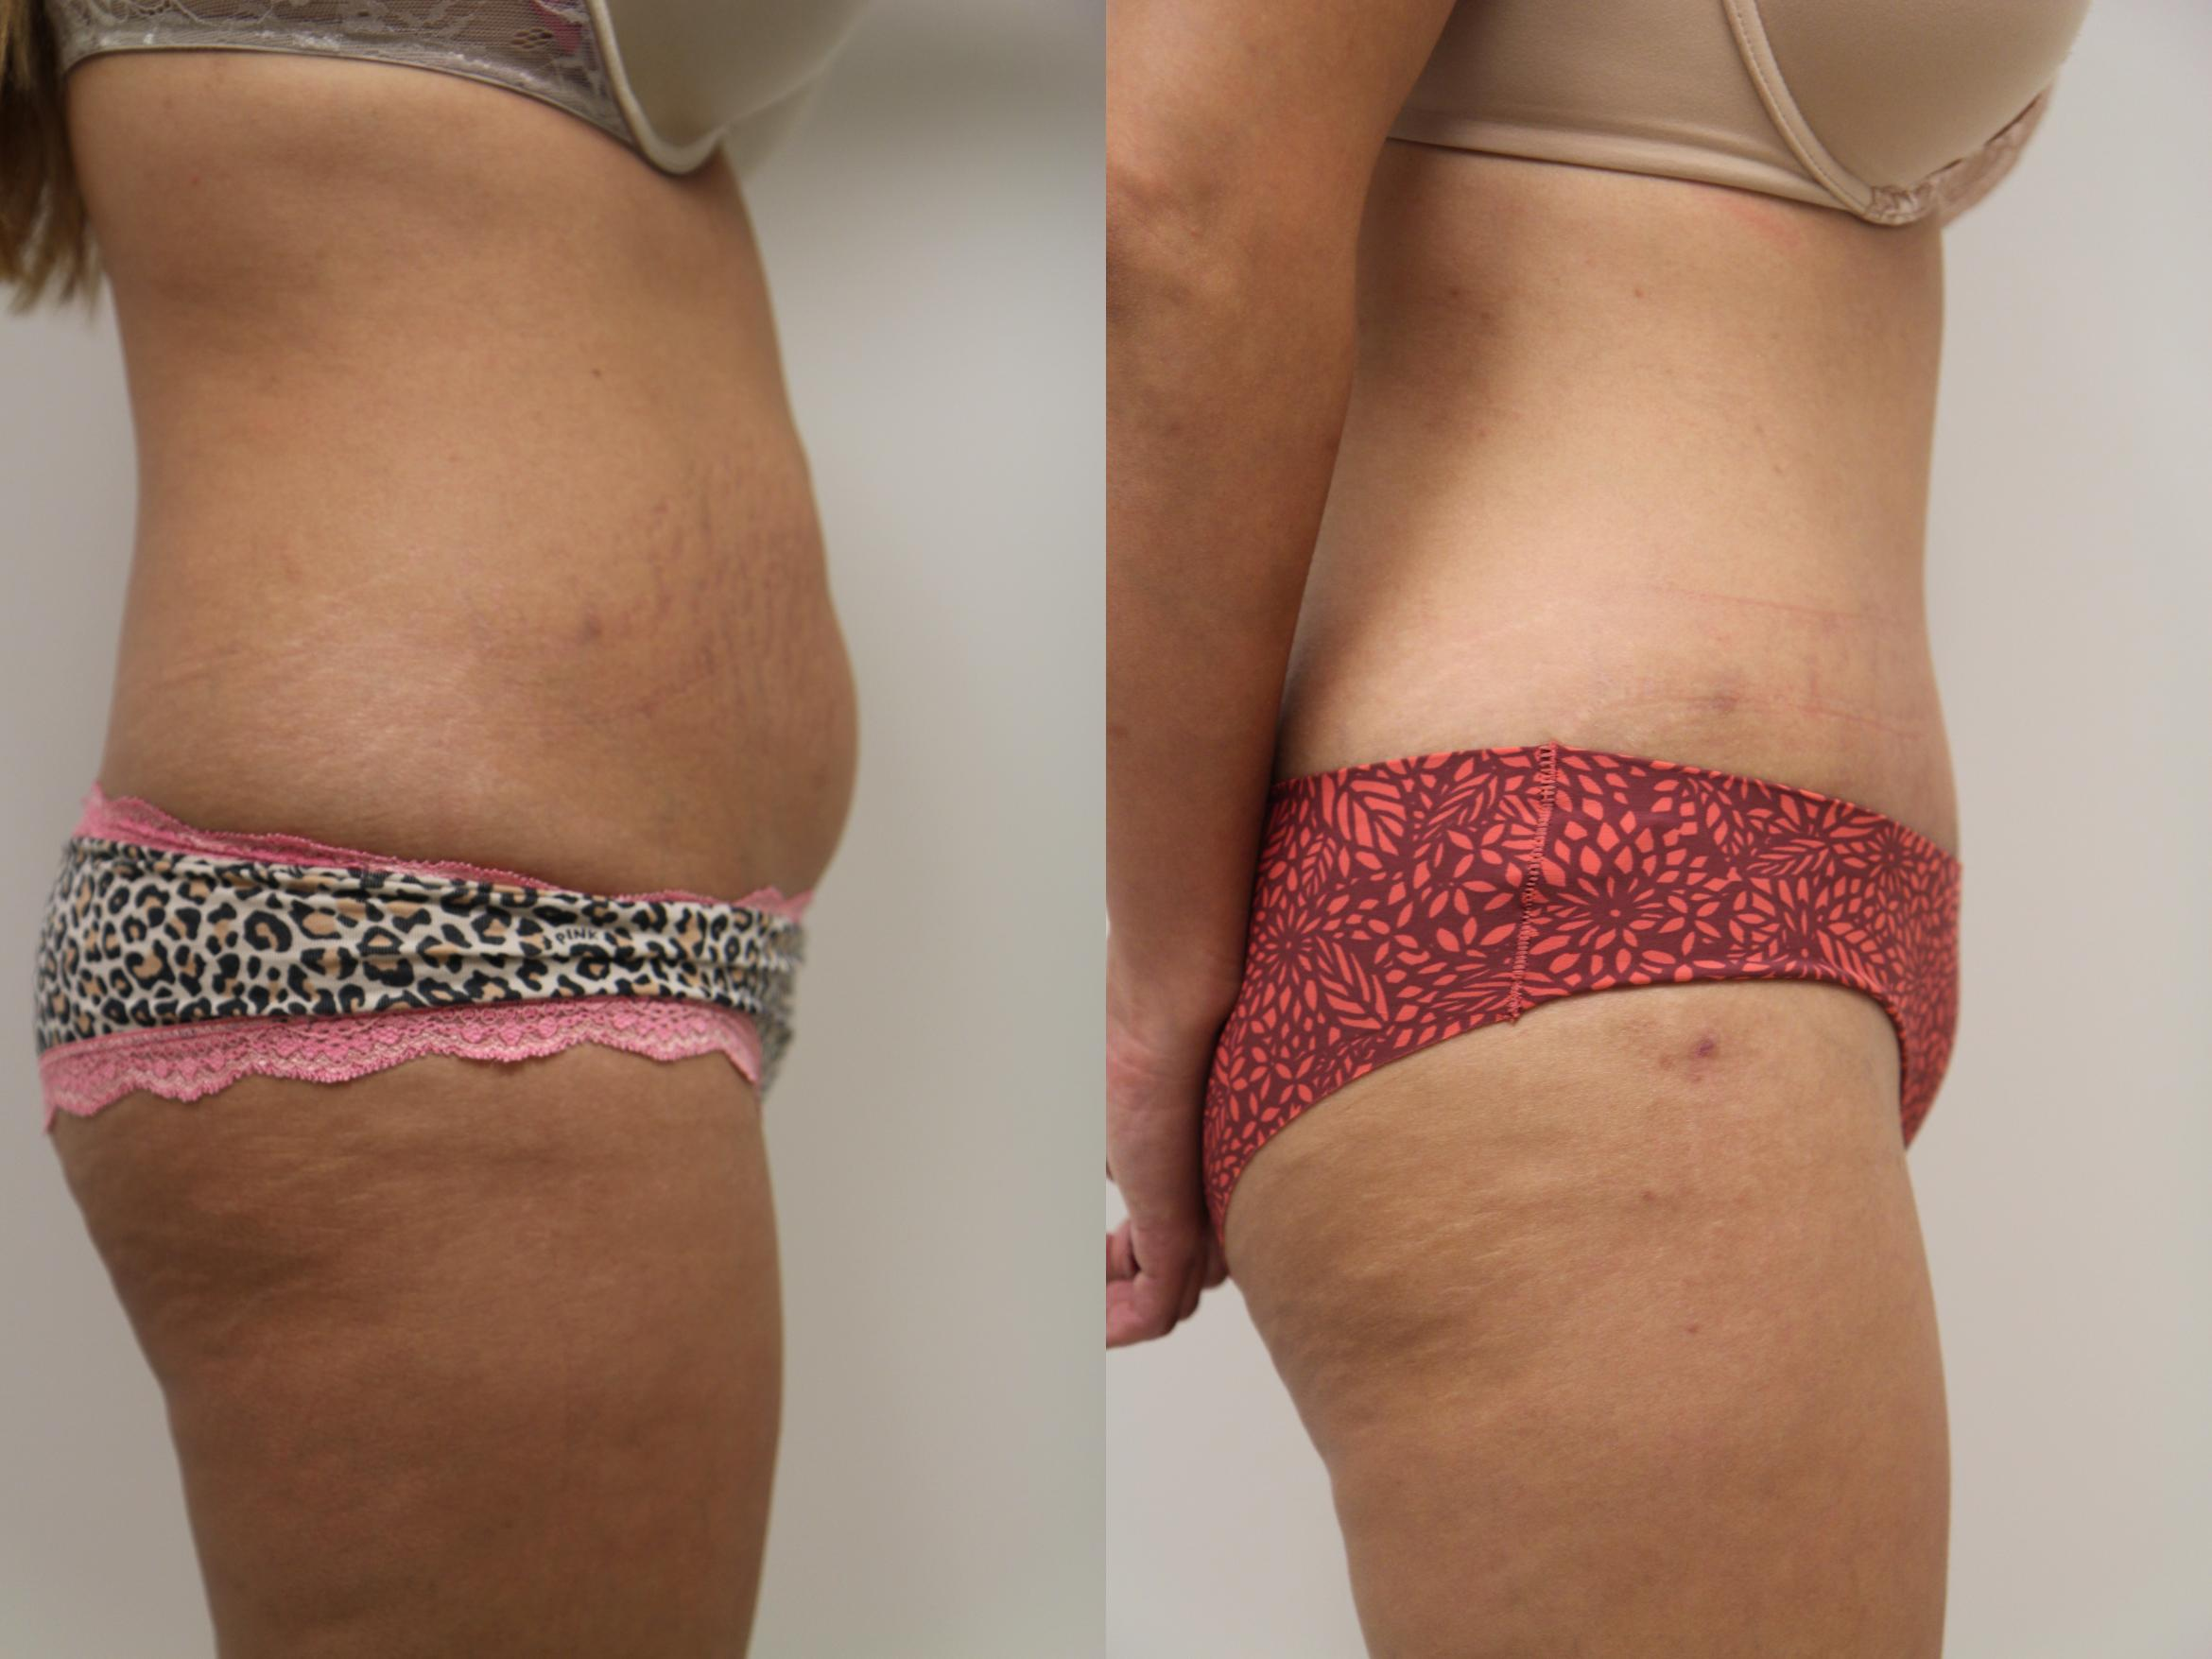 Tummy Tuck (Abdominoplasty) Case 66 Before & After View #3 | Gilbert, AZ | Dr. Josh Olson: Advanced Plastic Surgery Institute